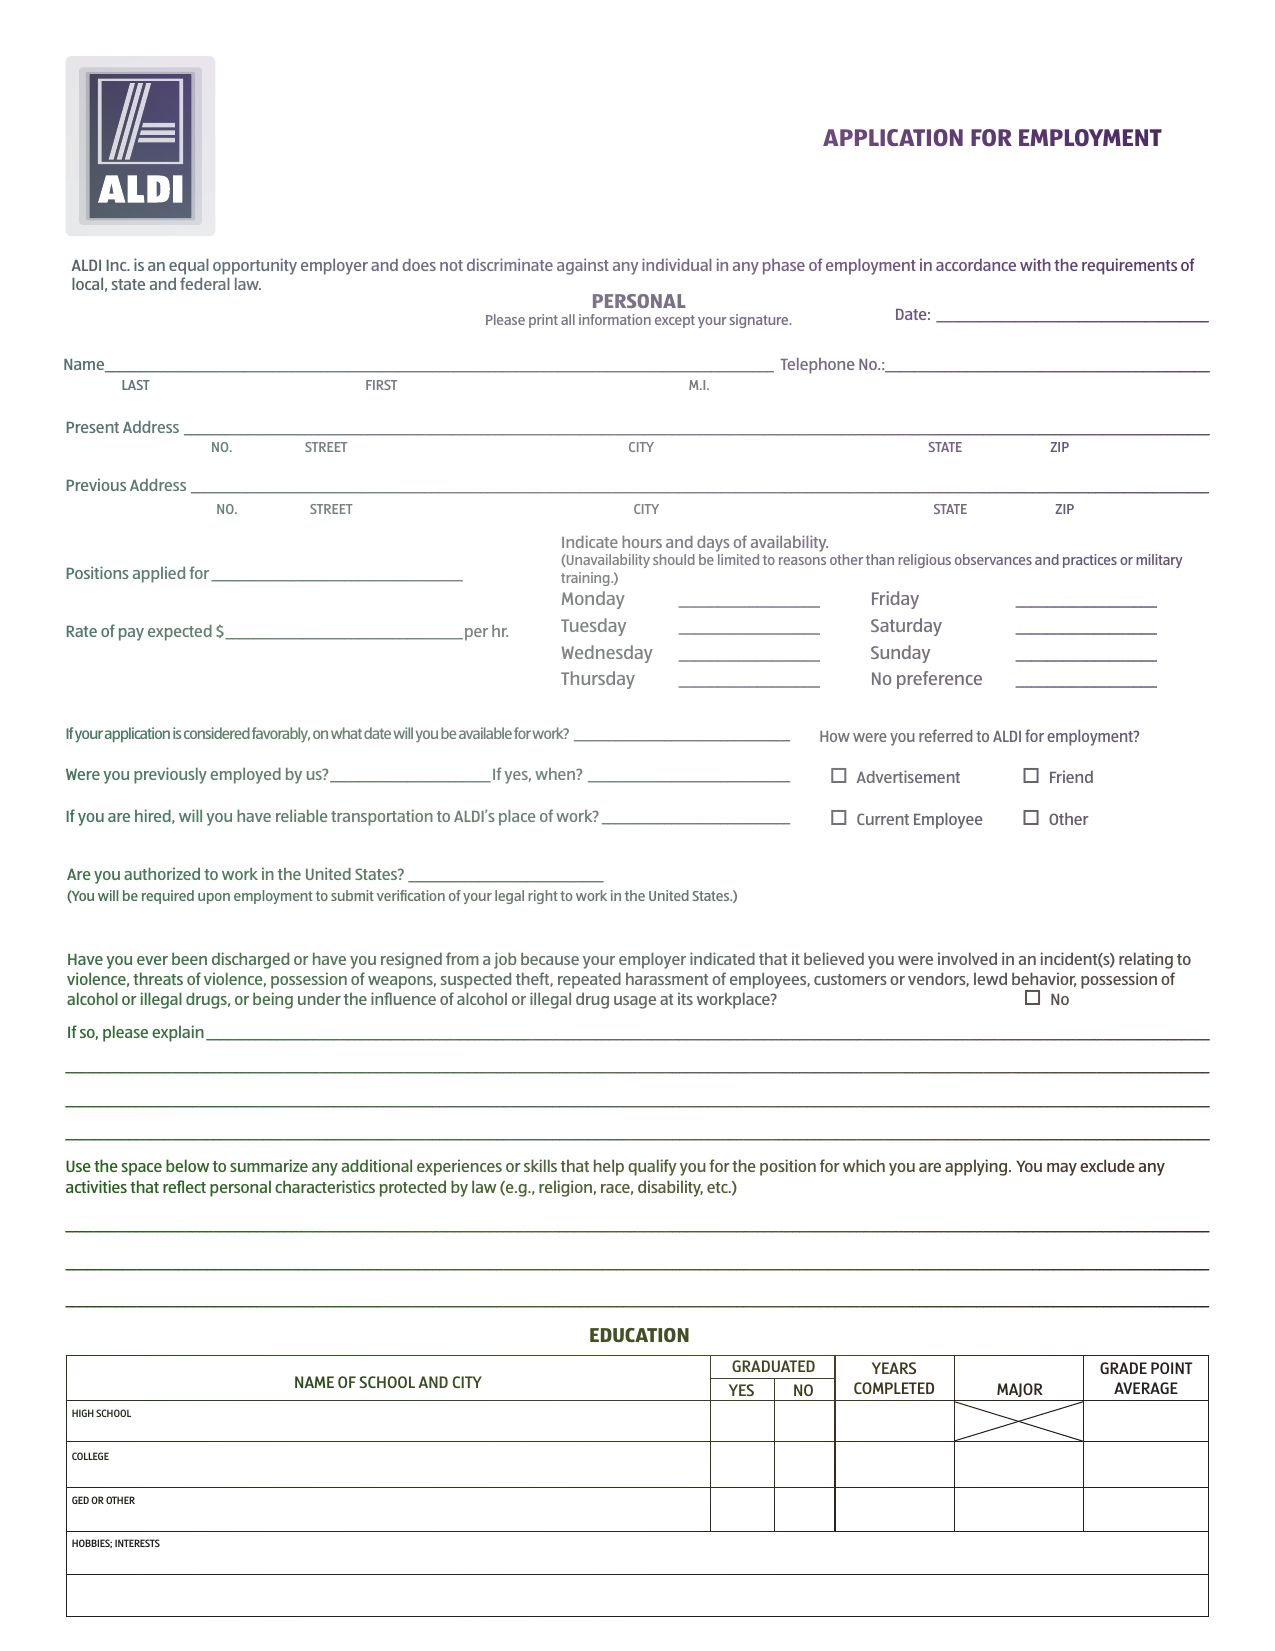 Aldi Application For Employment Aldi Application For Employment